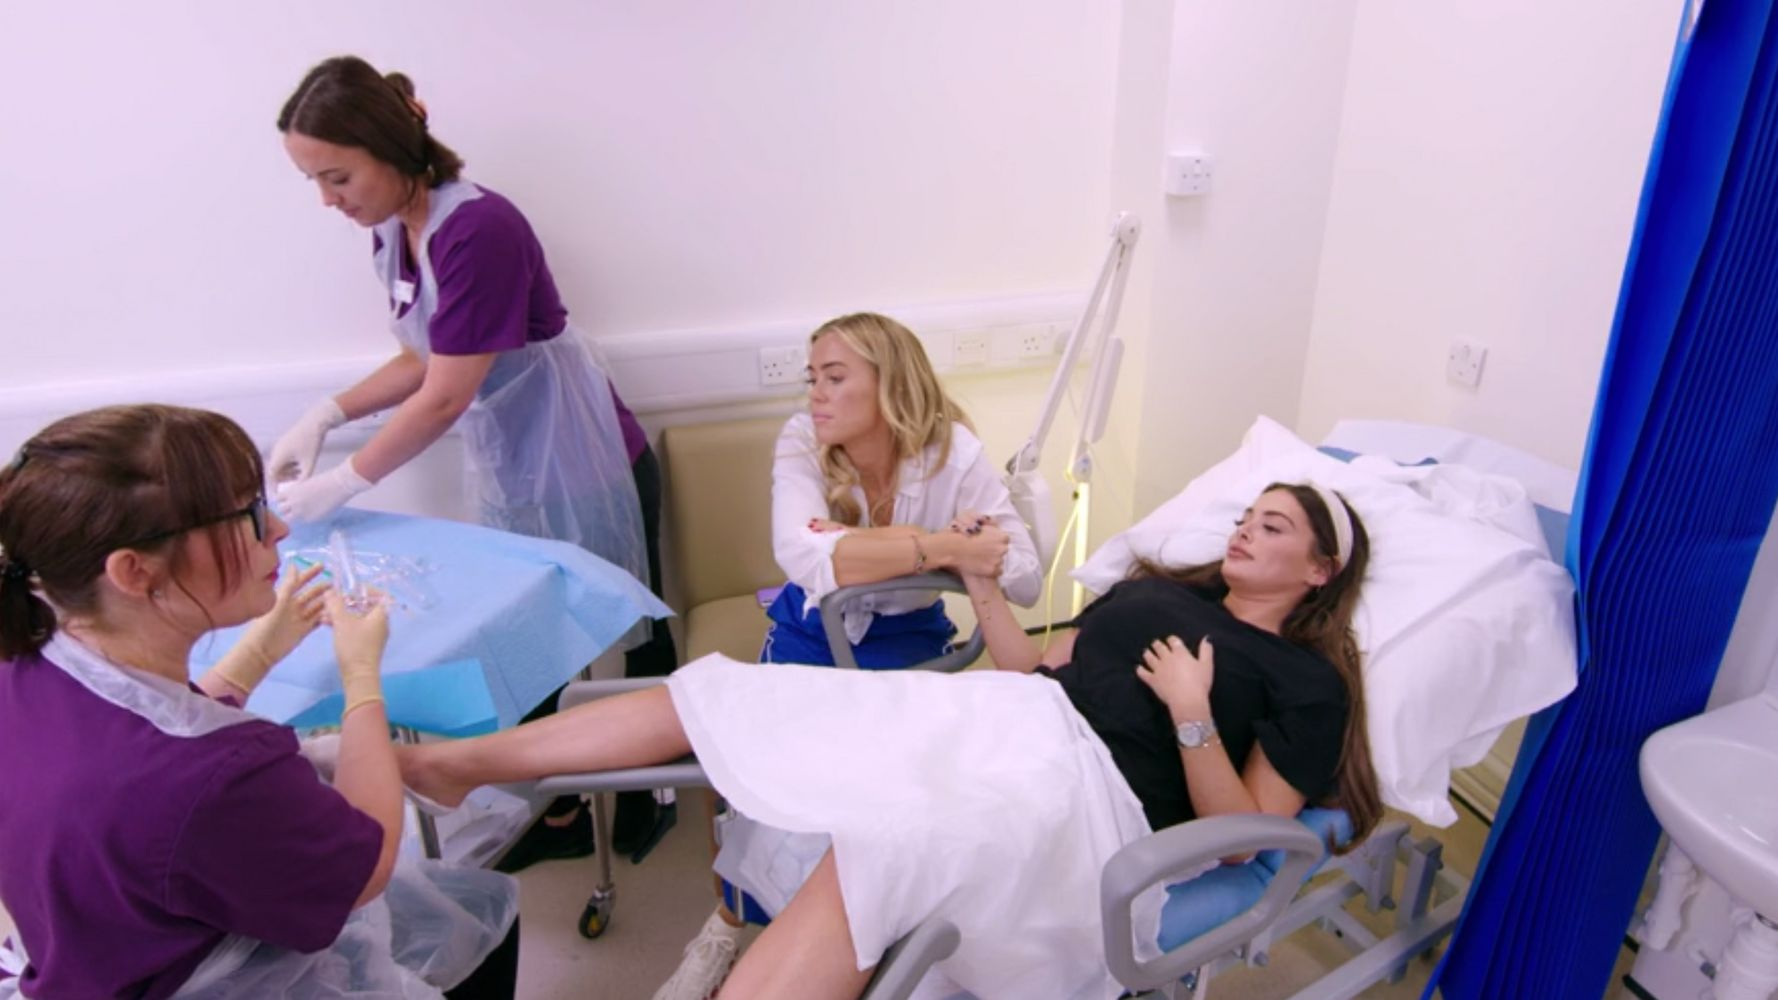 TOWIE Star Courtney Green Praised For Undergoing Cervical Screening On The Show